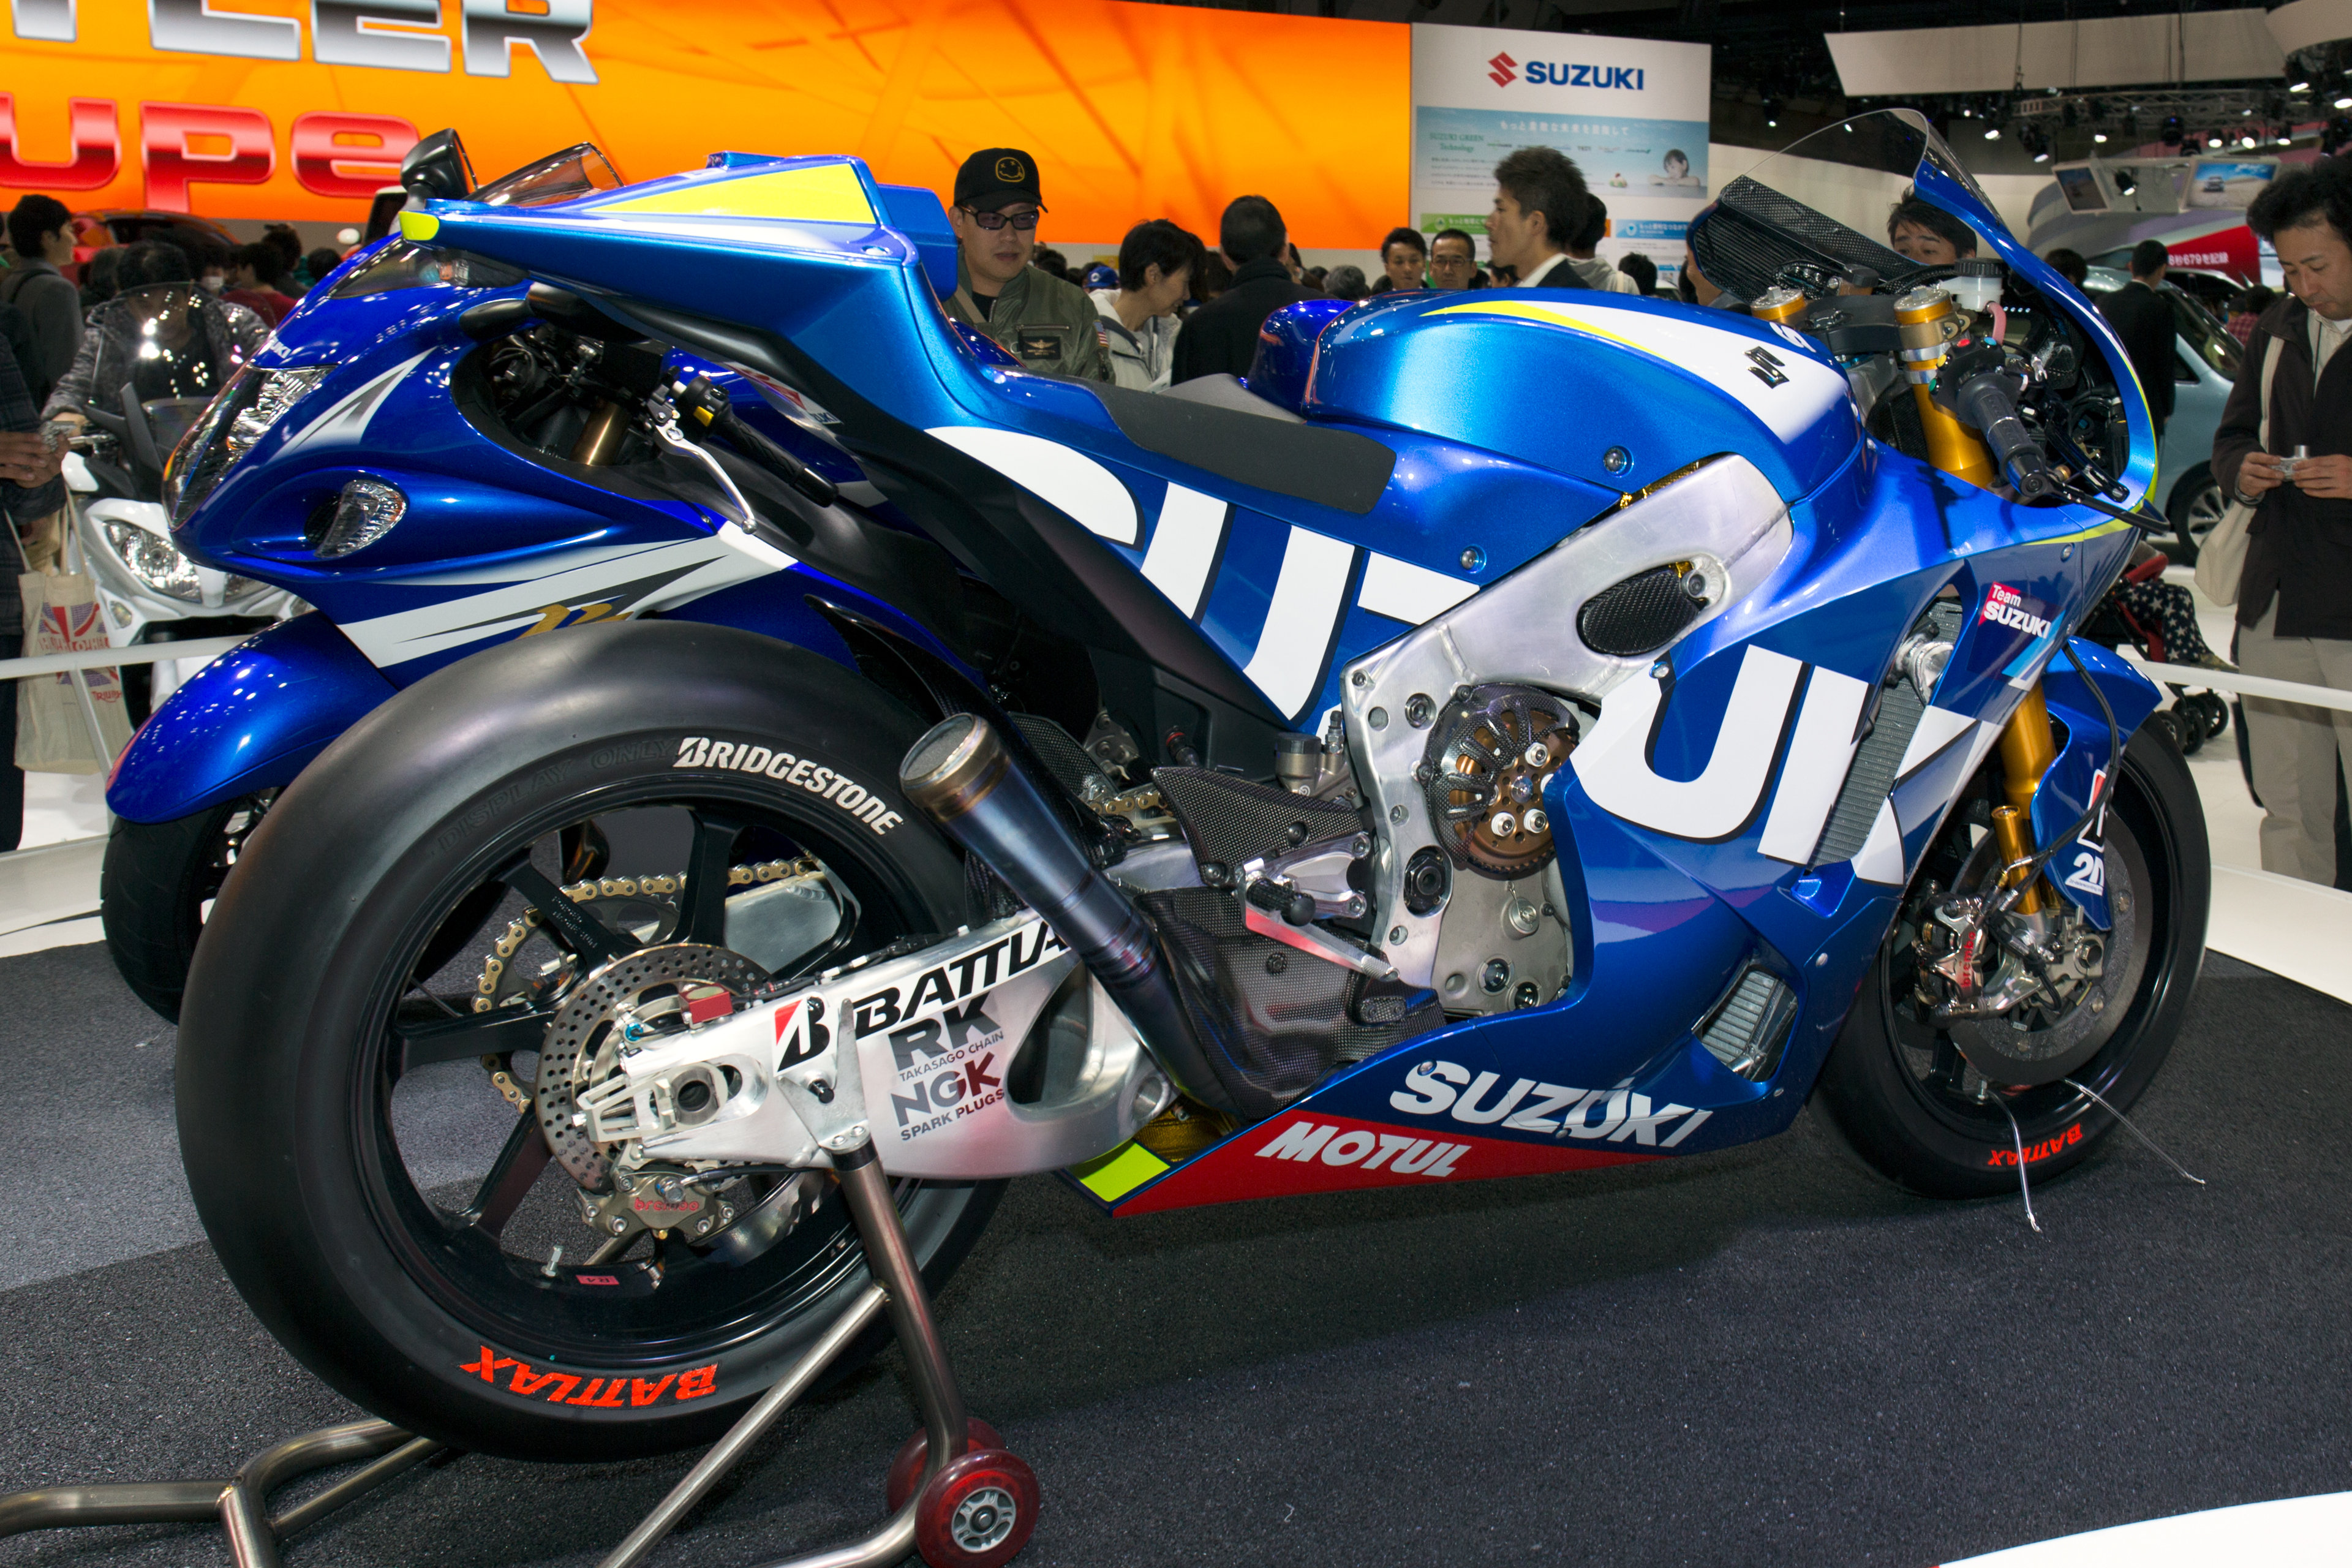 File:Suzuki MotoGP test bike rear-right 2013 Tokyo Motor Show.jpg - Wikimedia Commons